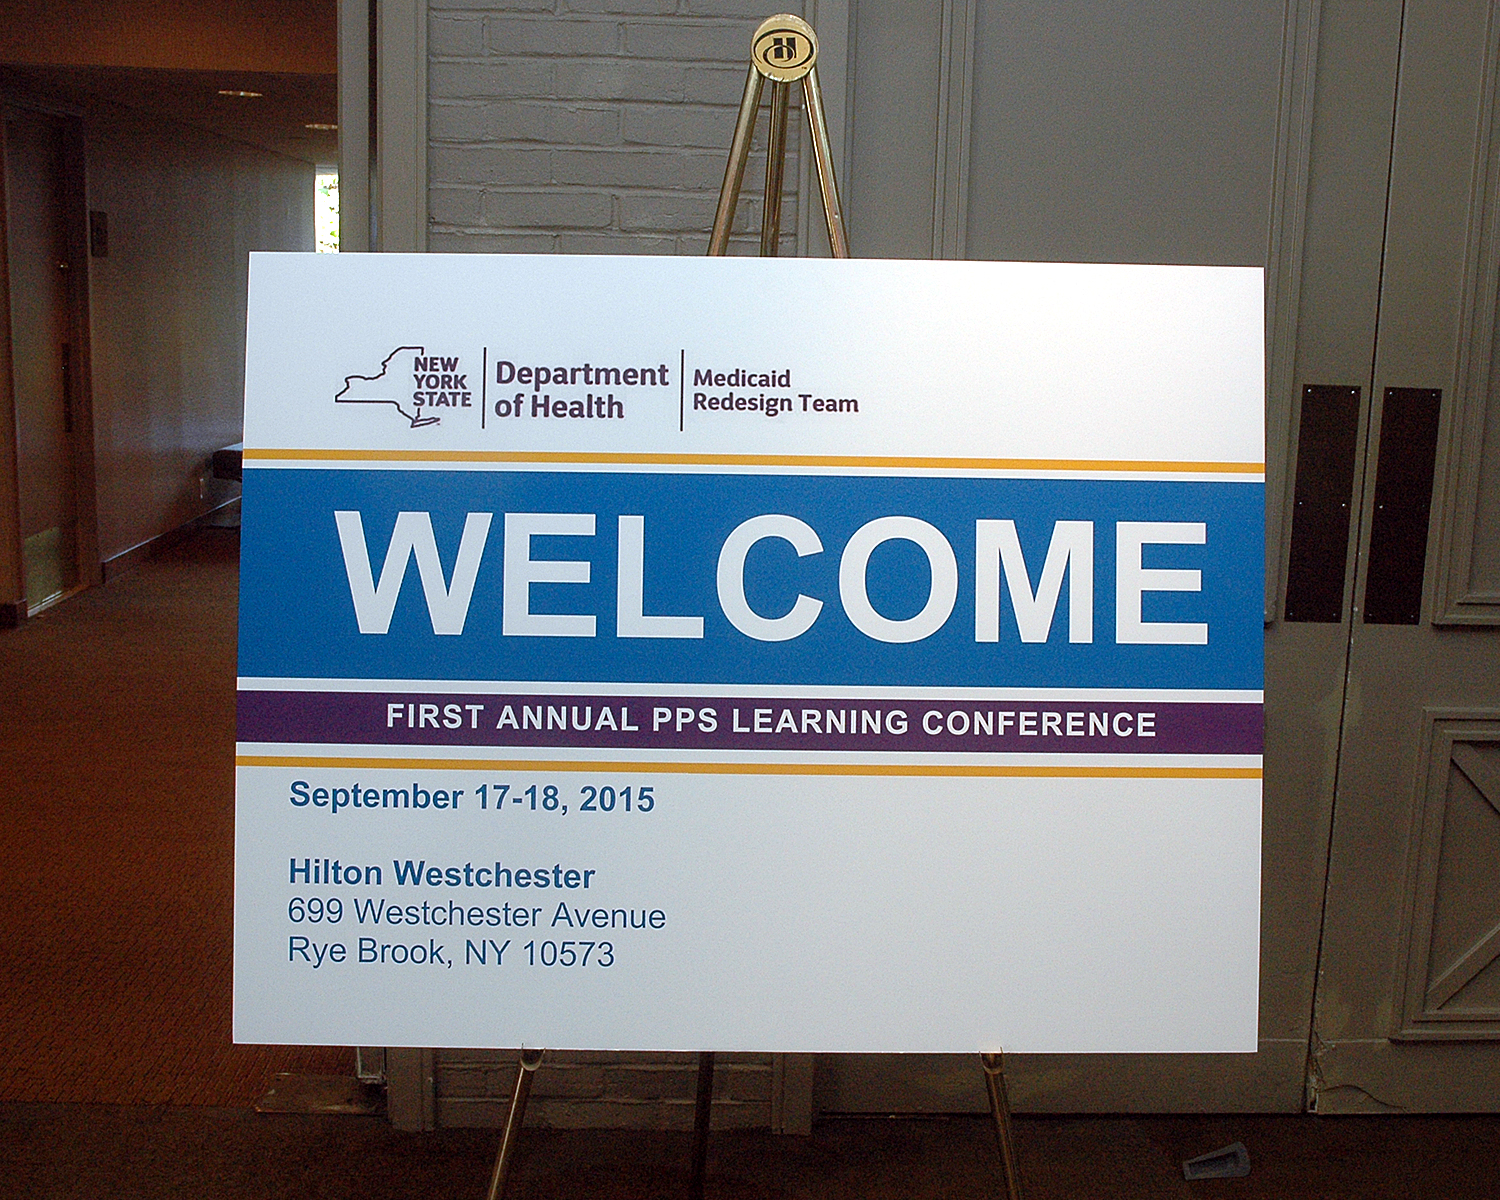 Welcome to the First Annual PPS Learning Conference